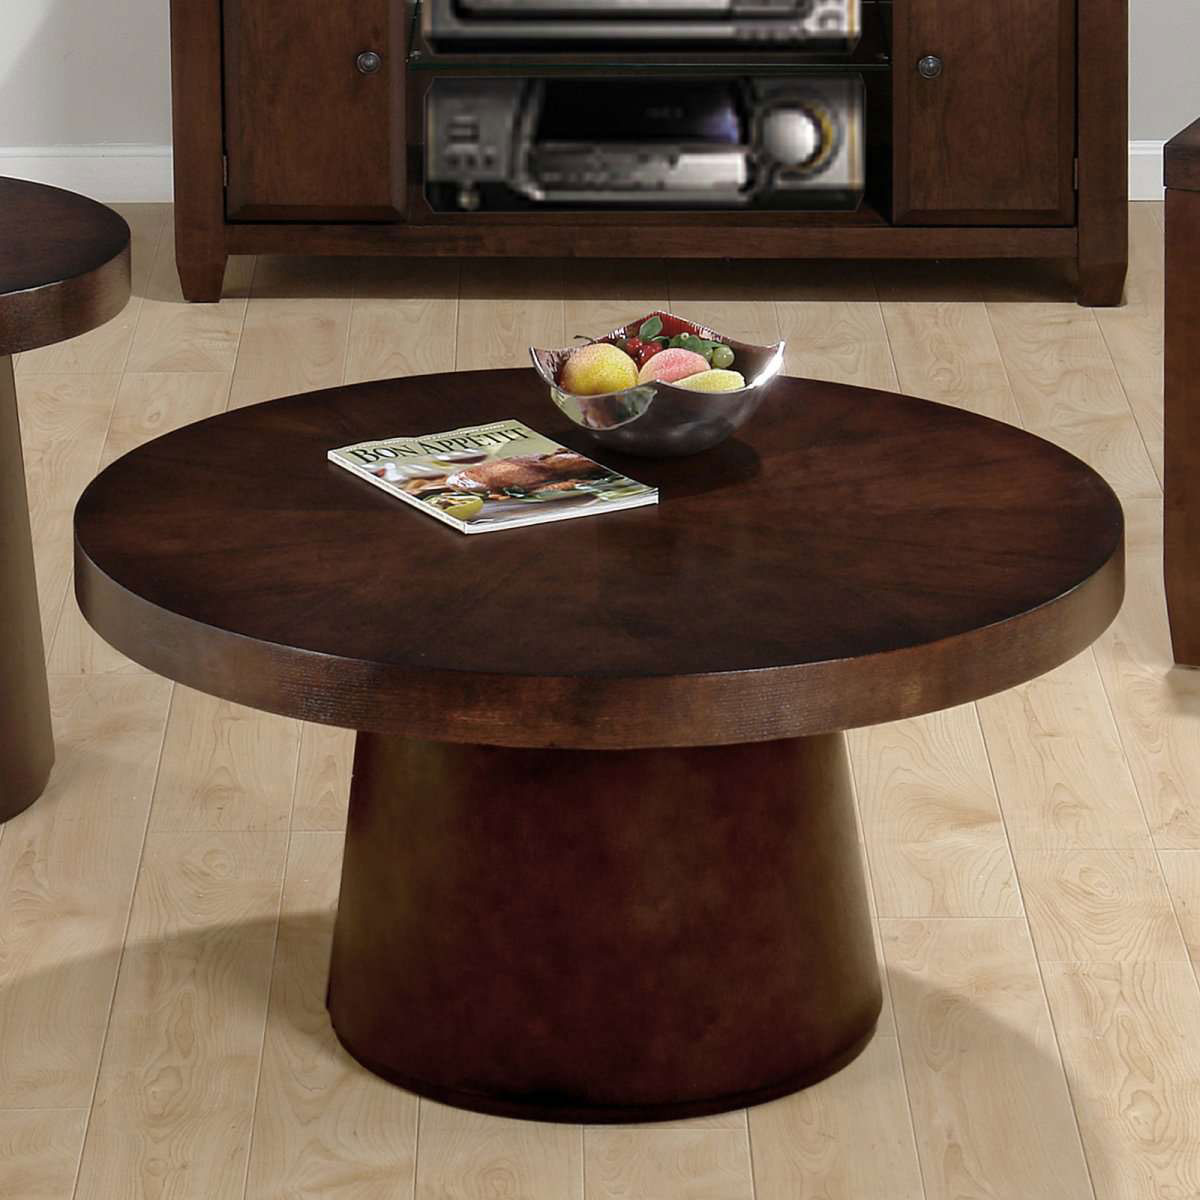 Futuristic Kitchen Design Contemporary Ideas Living Room Furniture Black Wood Round Coffee Table Small Round Coffee Table (View 4 of 18)